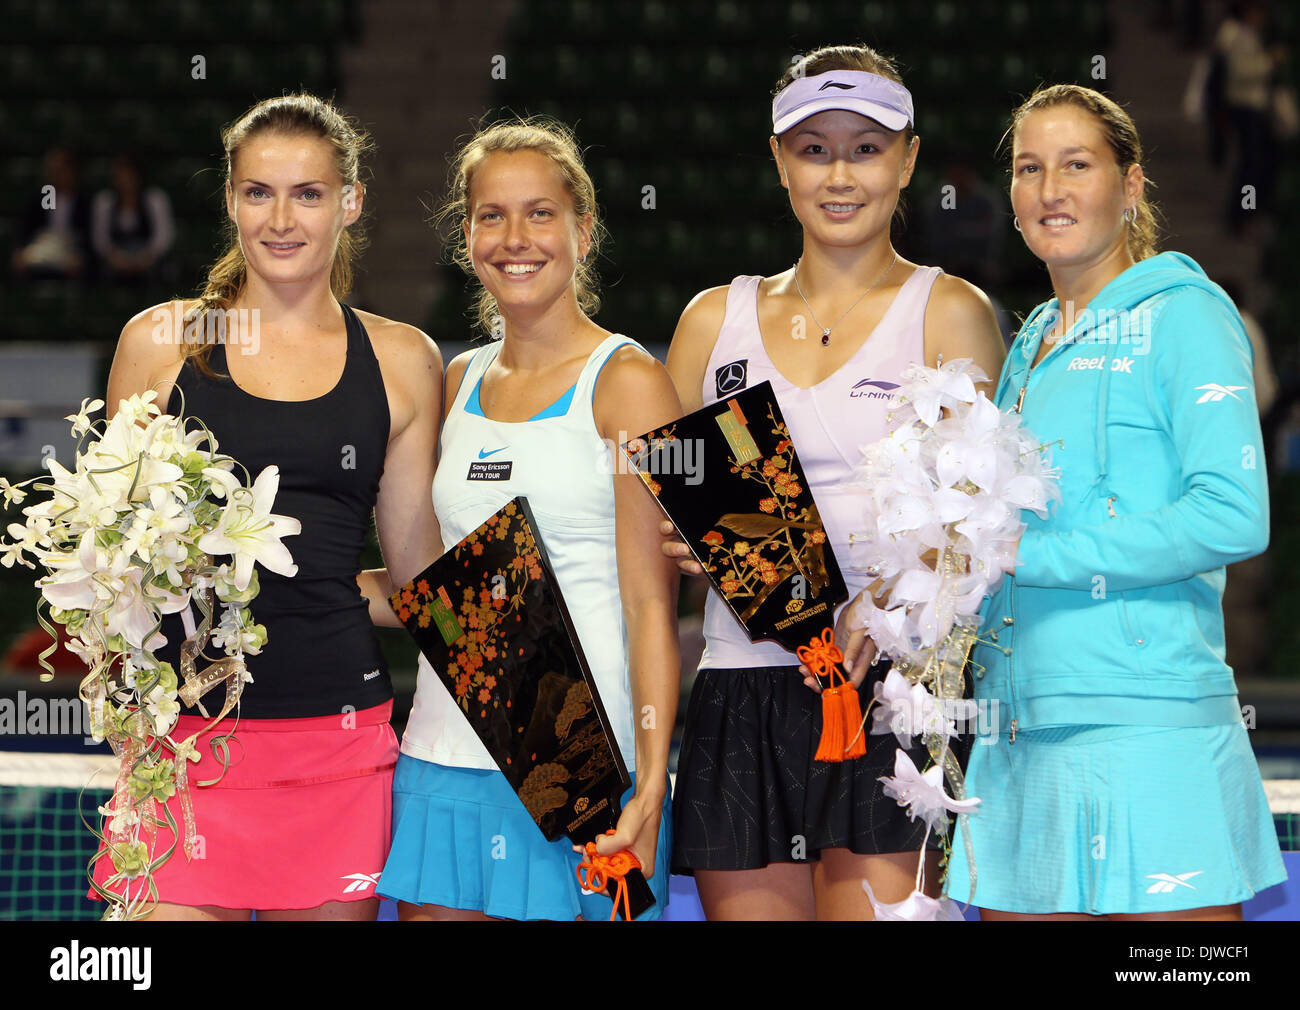 Oct 02, 2010 - Tokyo, Japan -  (L to R) WInners of the Doubles final IVETA BENESOVA and BARBORA ZAHLAVOVA STRYCOVA of Czech Republic, runner up SHAHAR PEER of Israel and SHUAI PENG of China pose for photographs during the Pan Pacific Open tennis tournament at Ariake Colosseum in Tokyo, Japan. (Credit Image: © Junko Kimura/Jana/ZUMApress.com) - Stock Image